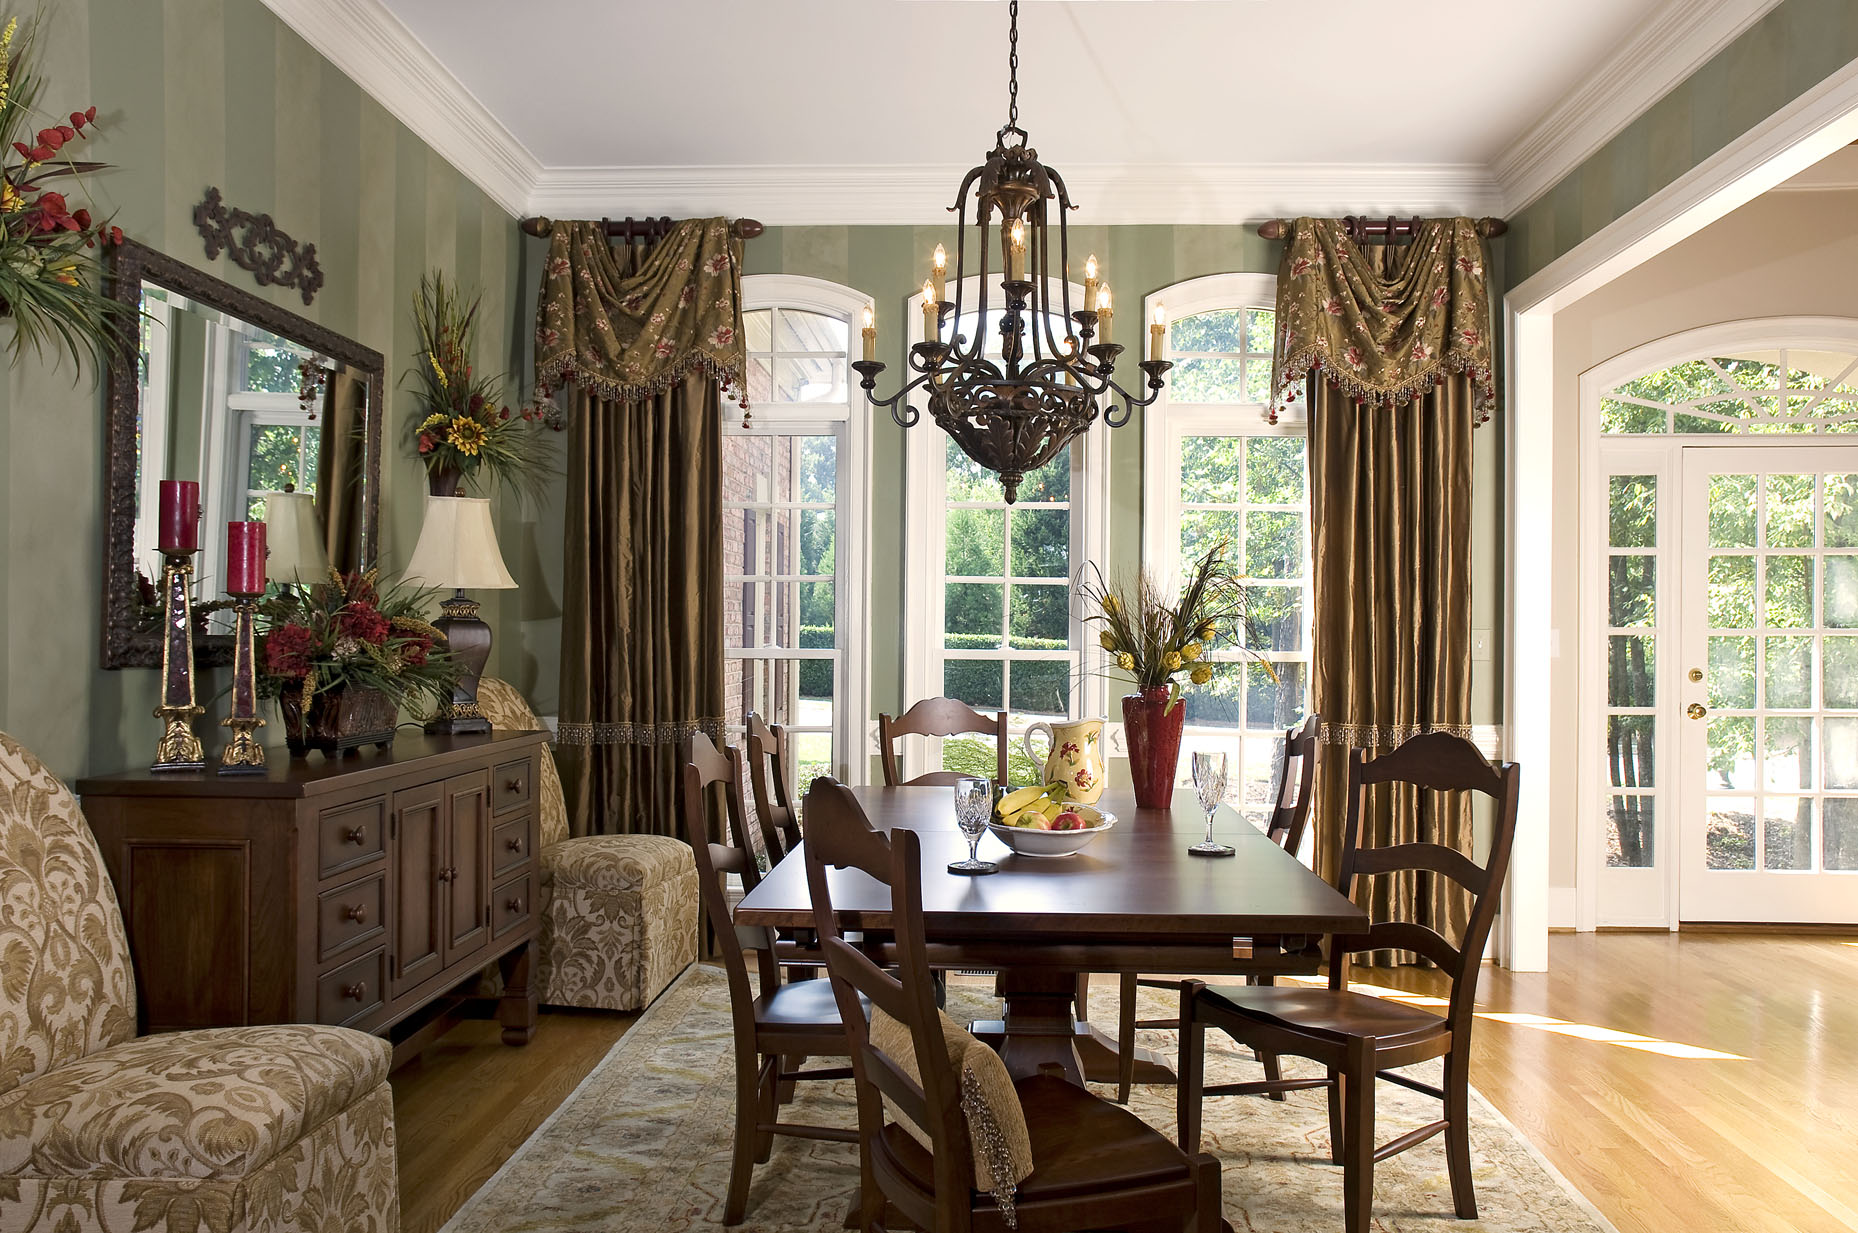 Decorating den interiors blog interior decorating and for Classic american decorating style